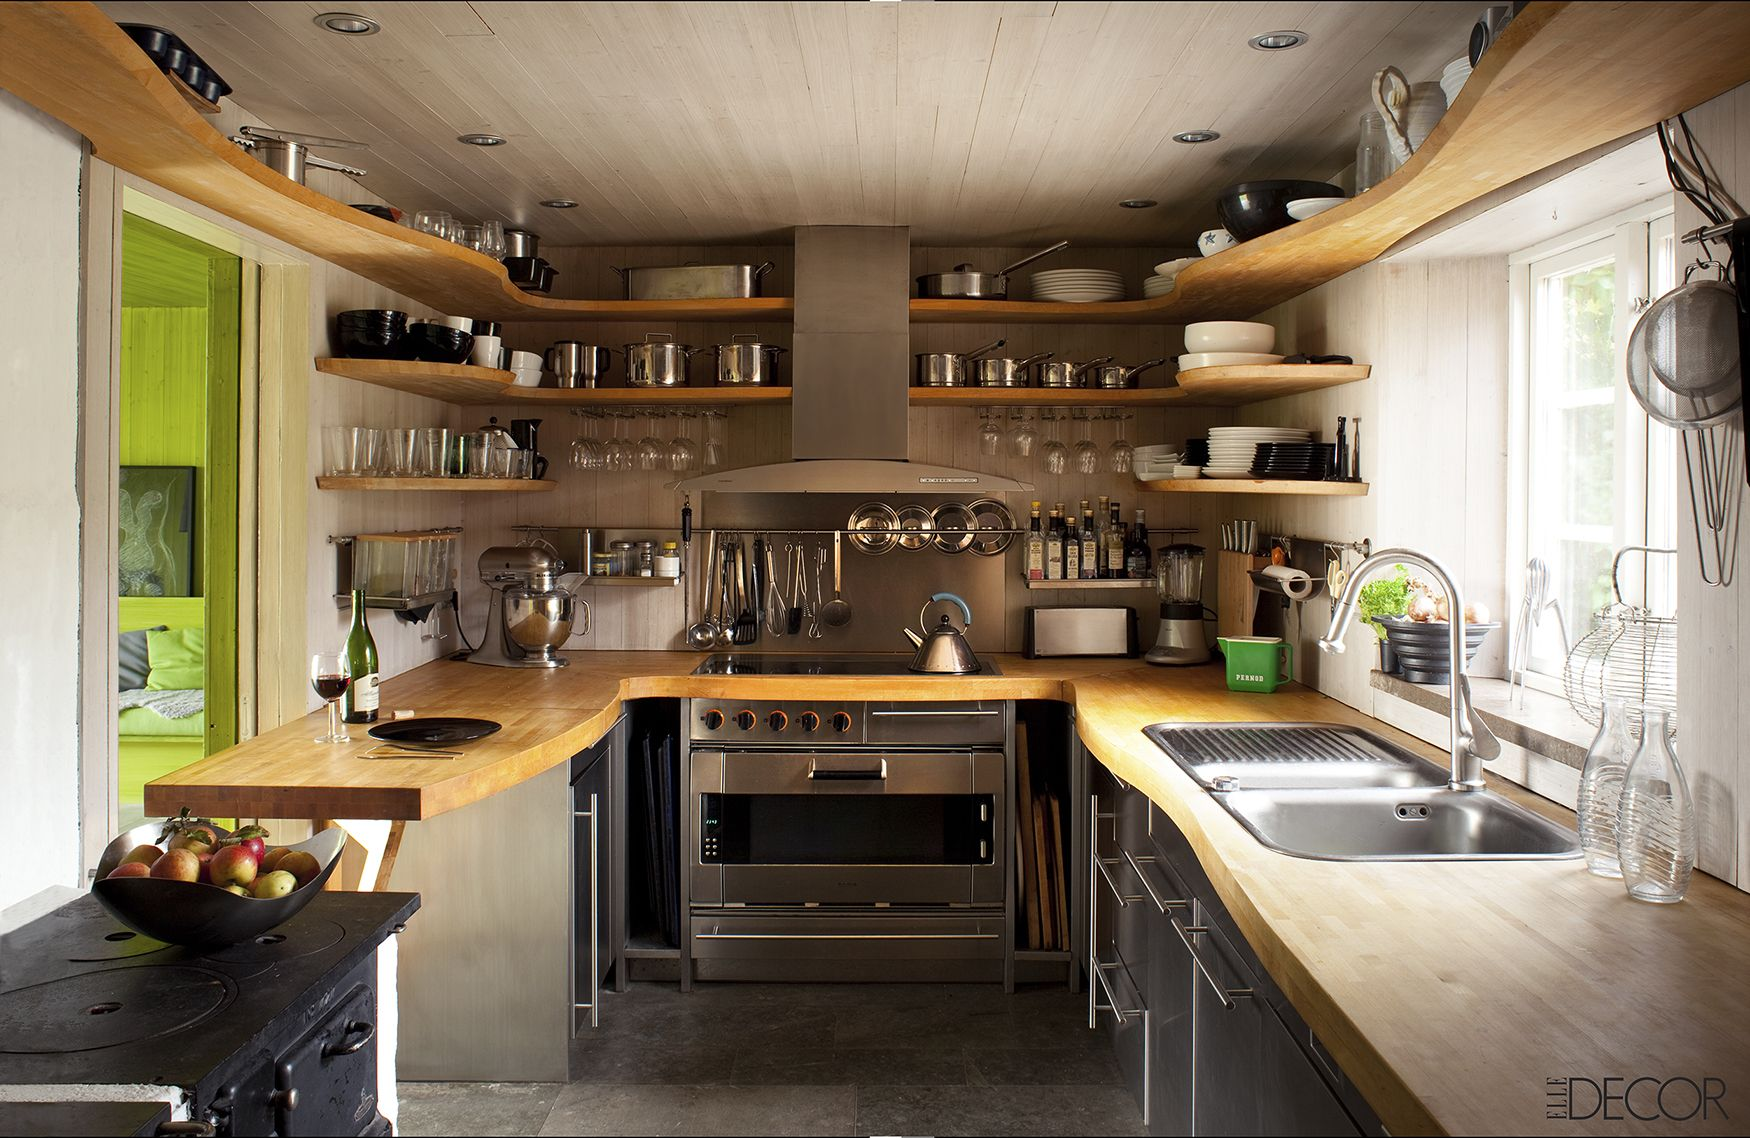 Peachy 40 Small Kitchen Design Ideas Decorating Tiny Kitchens Largest Home Design Picture Inspirations Pitcheantrous